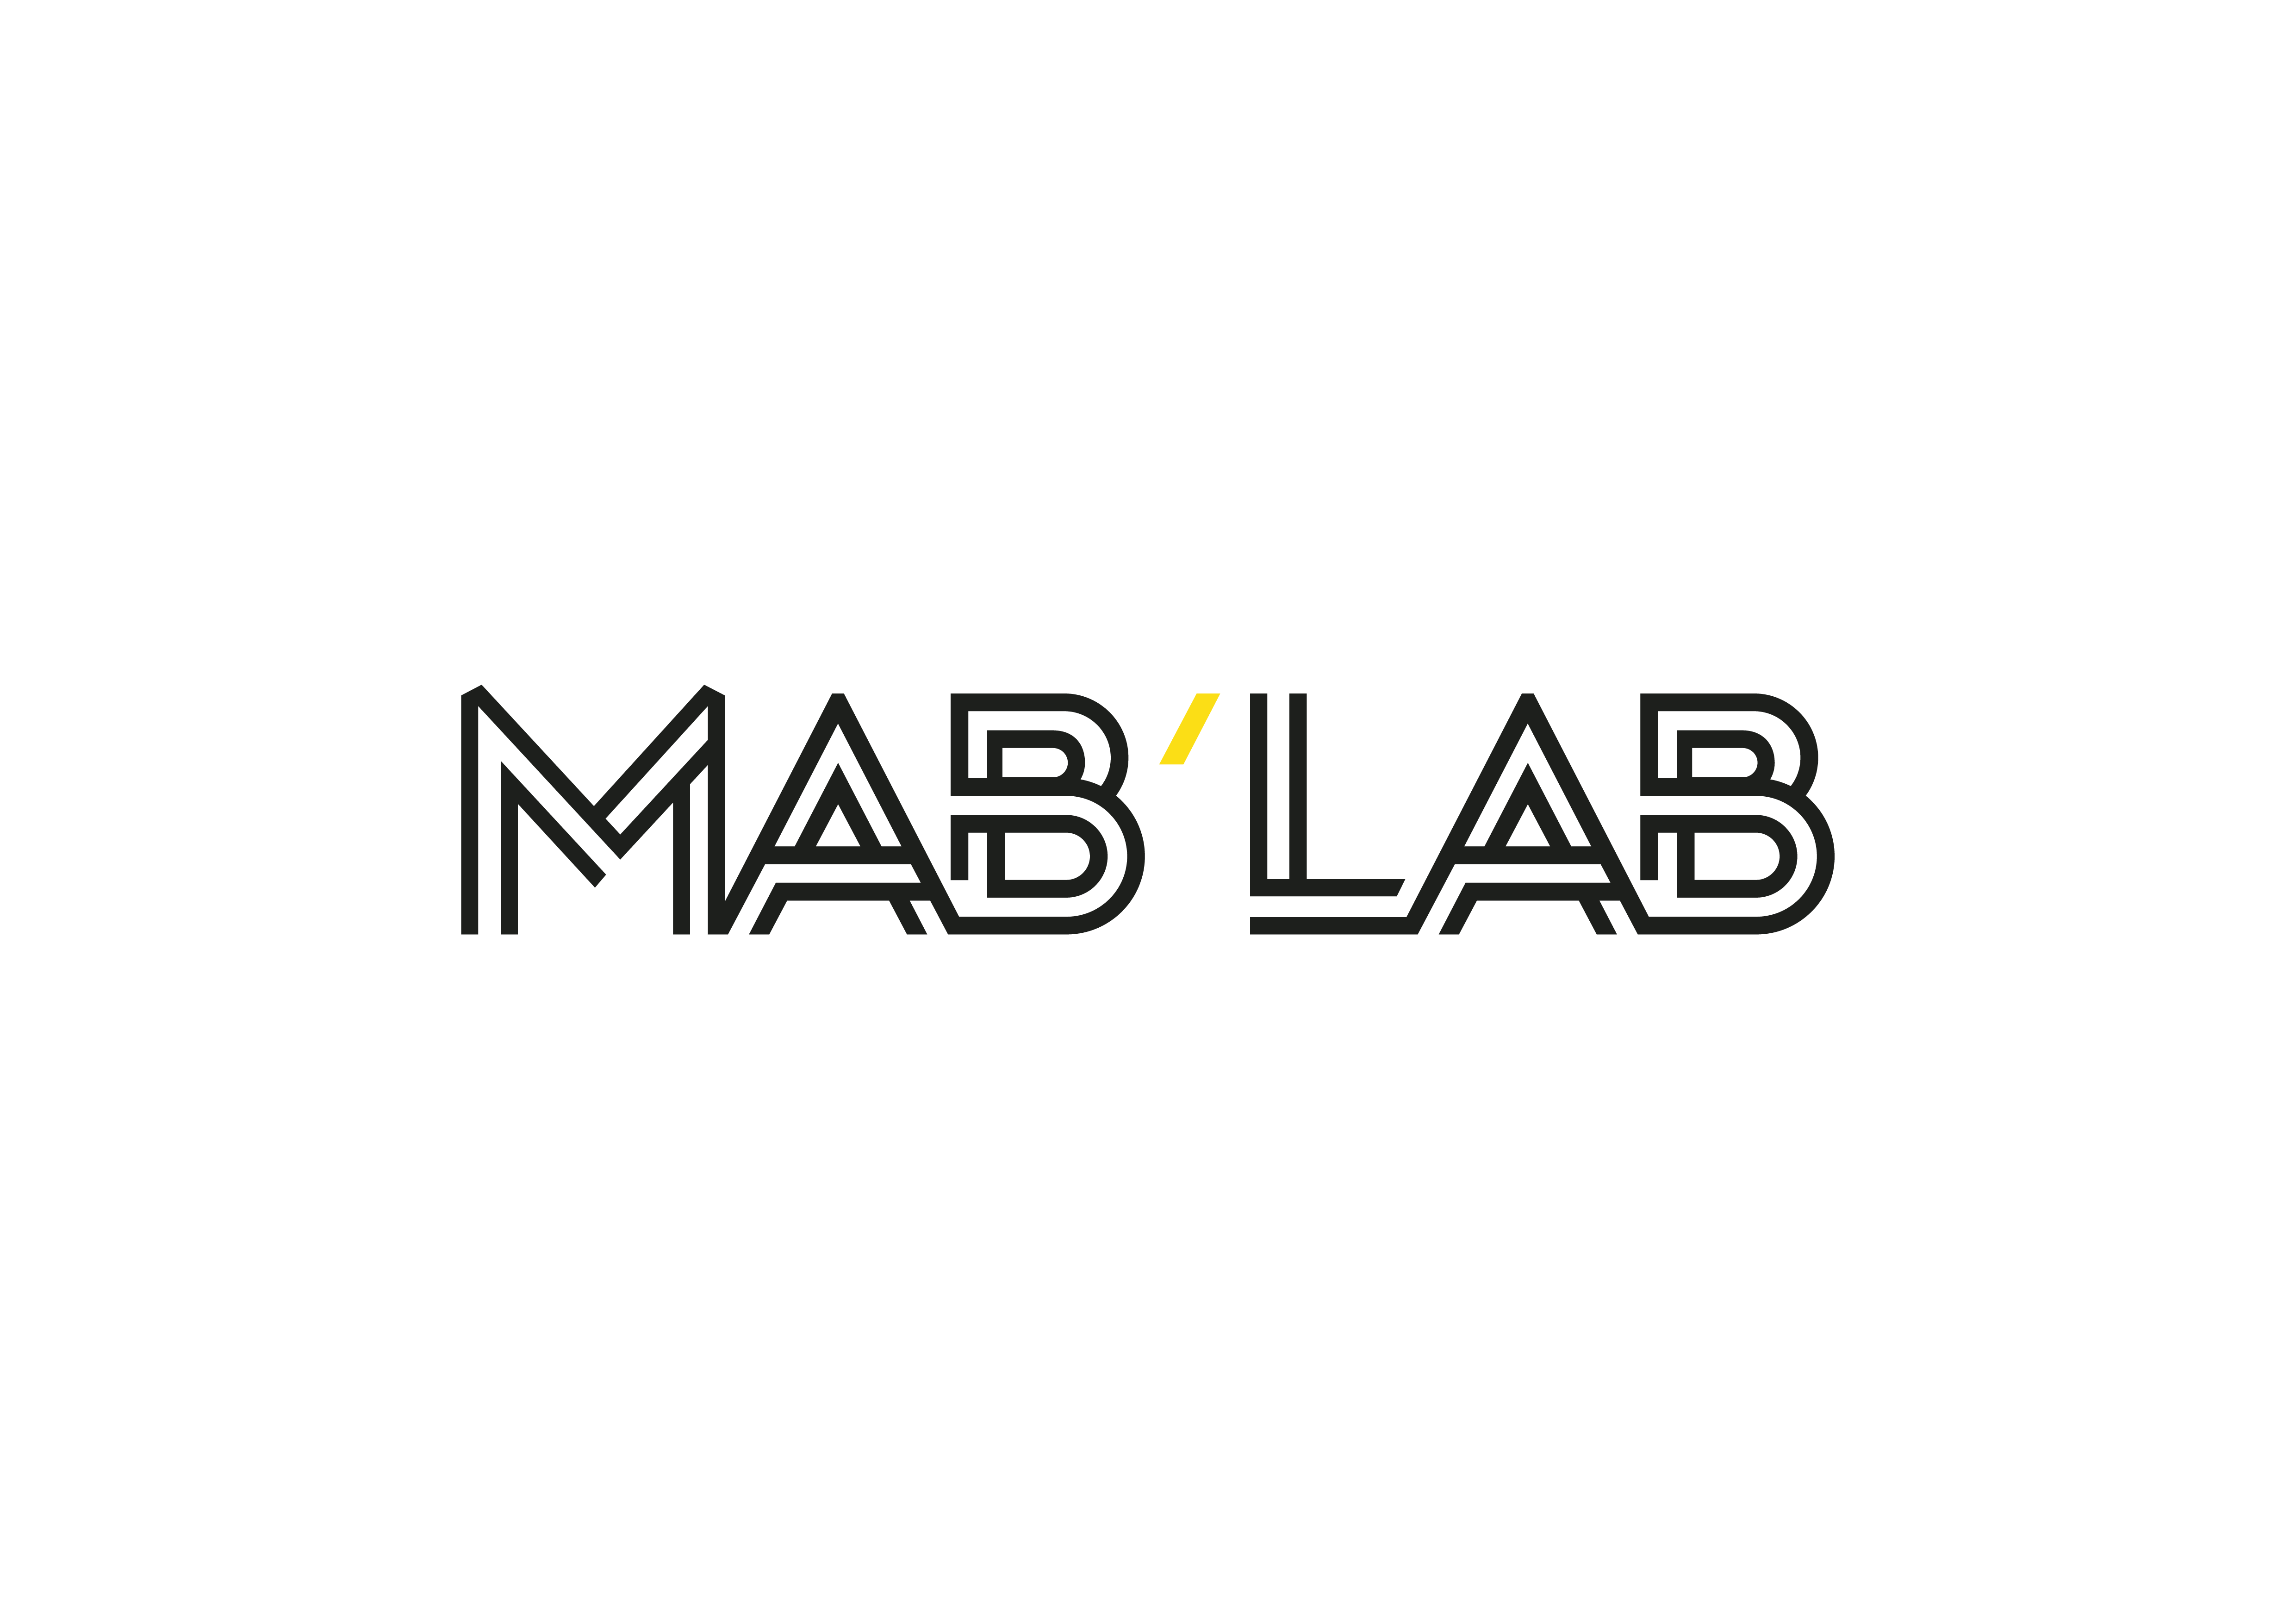 Mablab Coworking A1